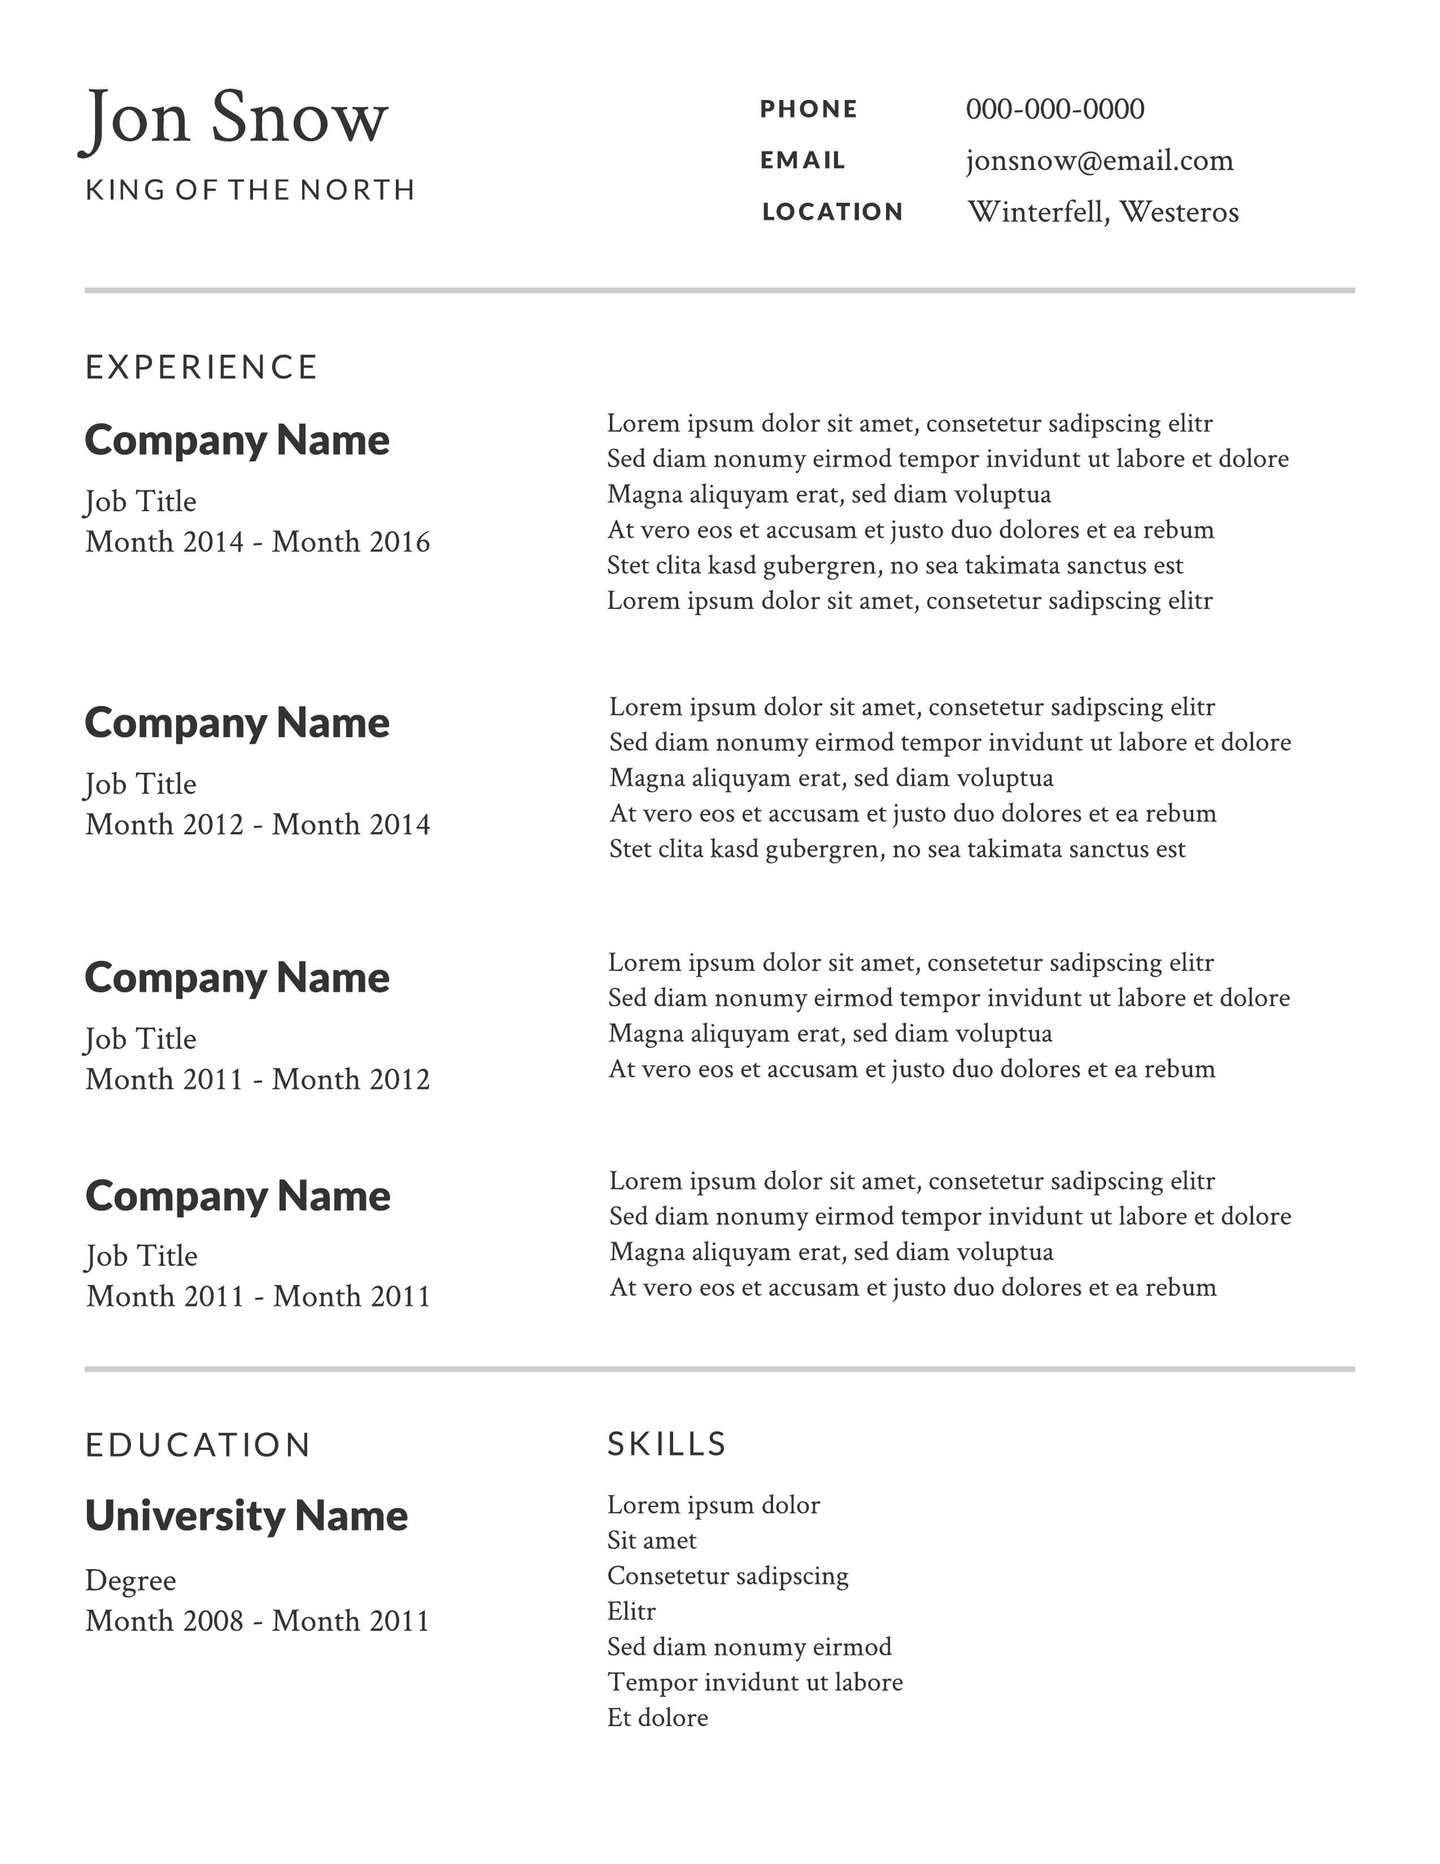 2 free resume templates examples lucidpress for Reusme template